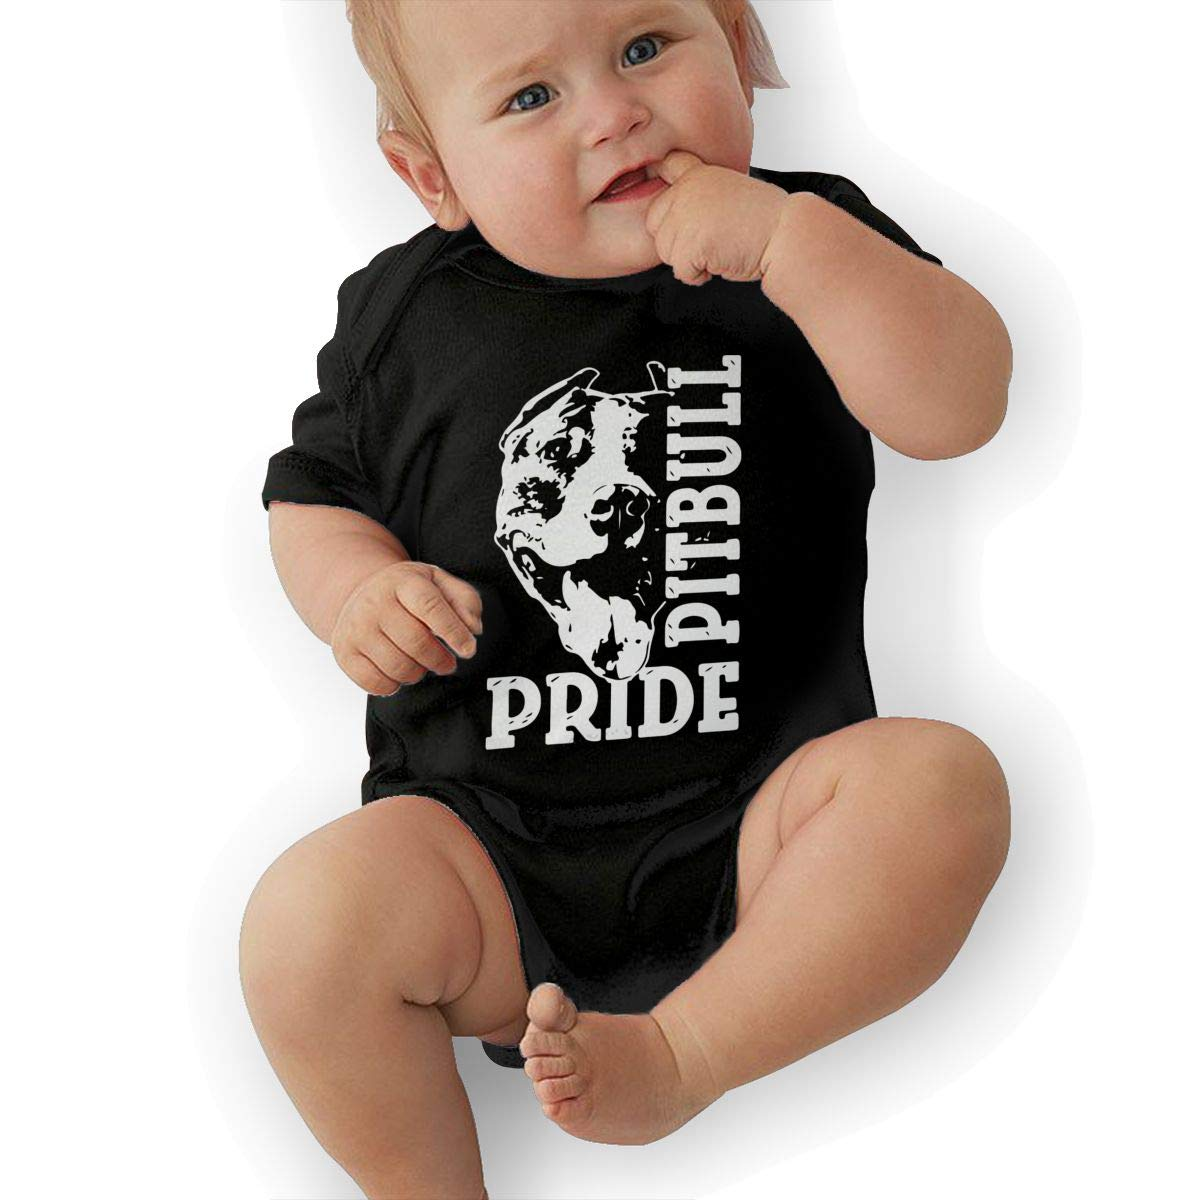 Soft Pitbull Pride Onesies U88oi-8 Short Sleeve Cotton Bodysuit for Baby Boys and Girls